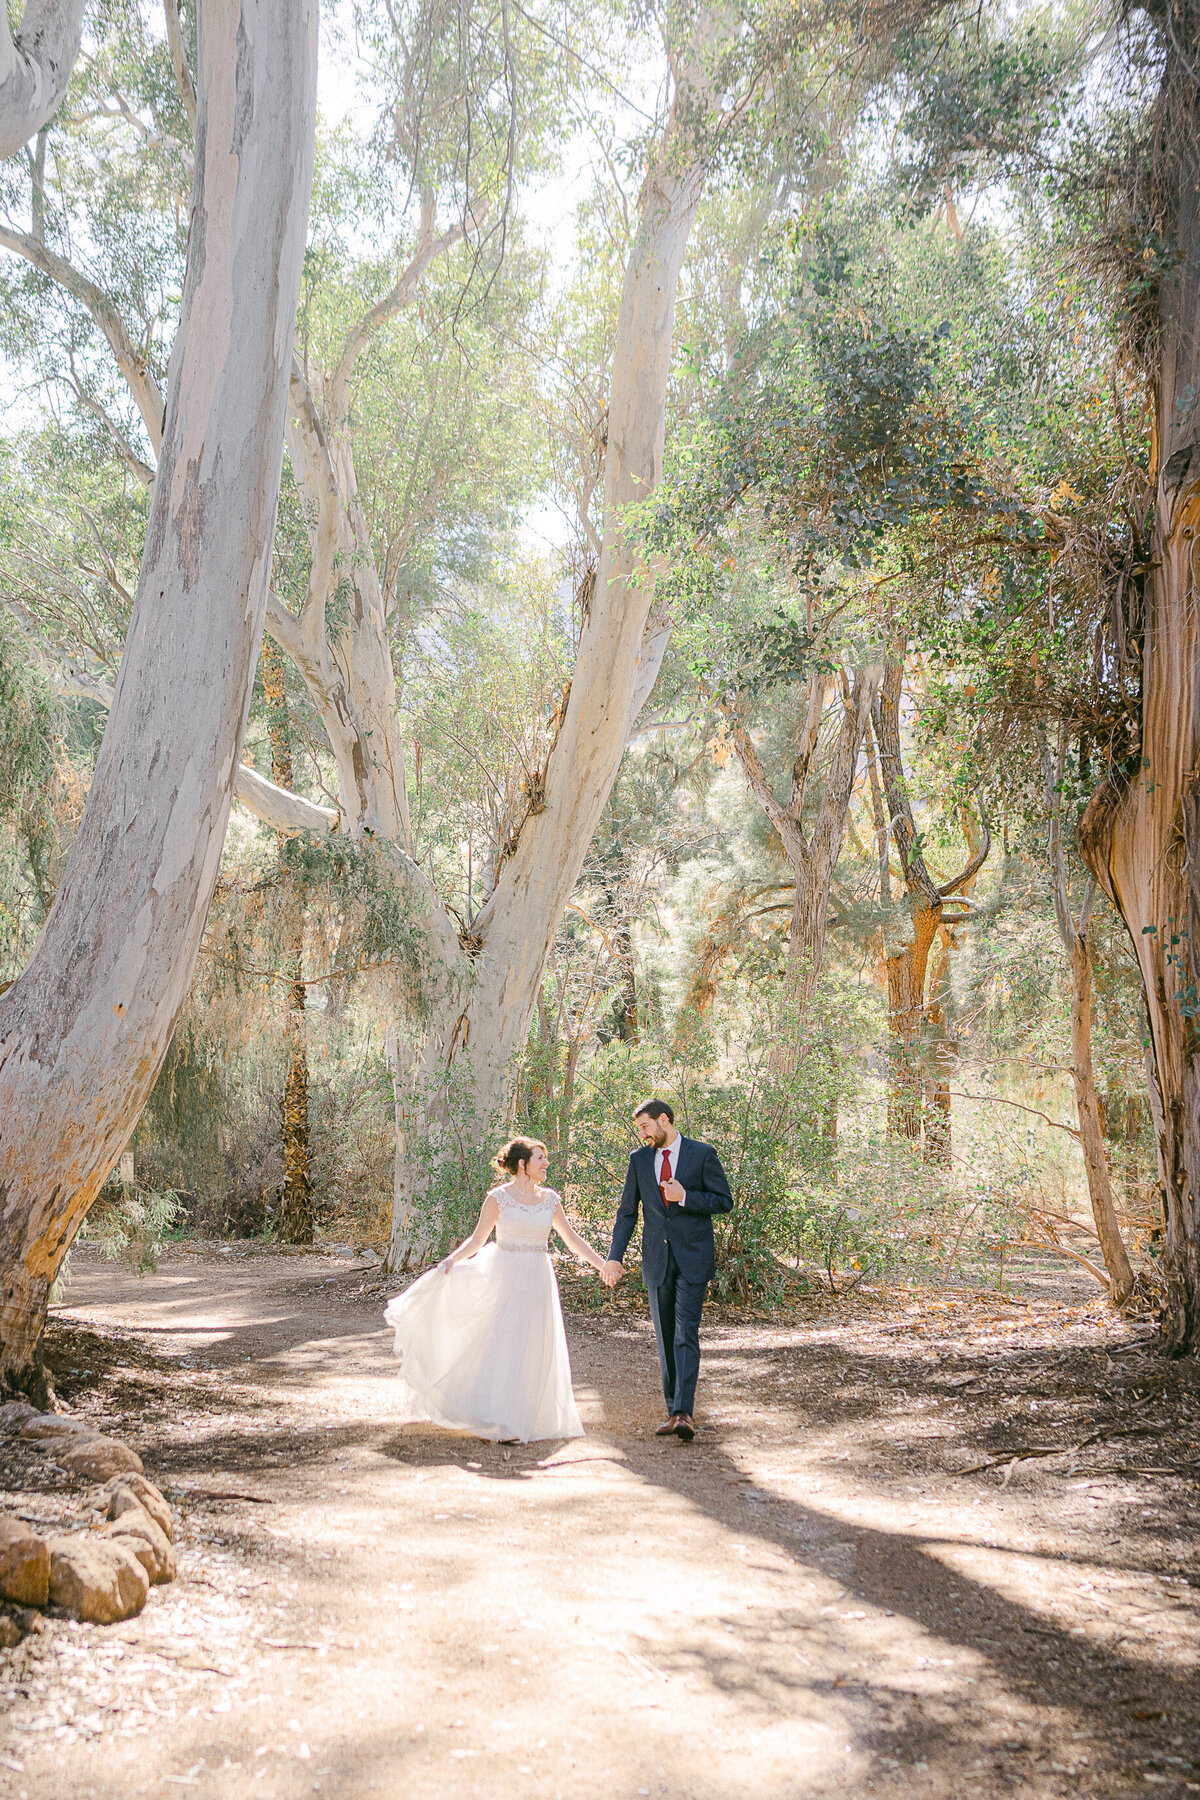 Boyce Thompson Arboretum Wedding - Robbie And Jen - Phoenix Wedding Photographer - Atlas Rose Photography AZ10